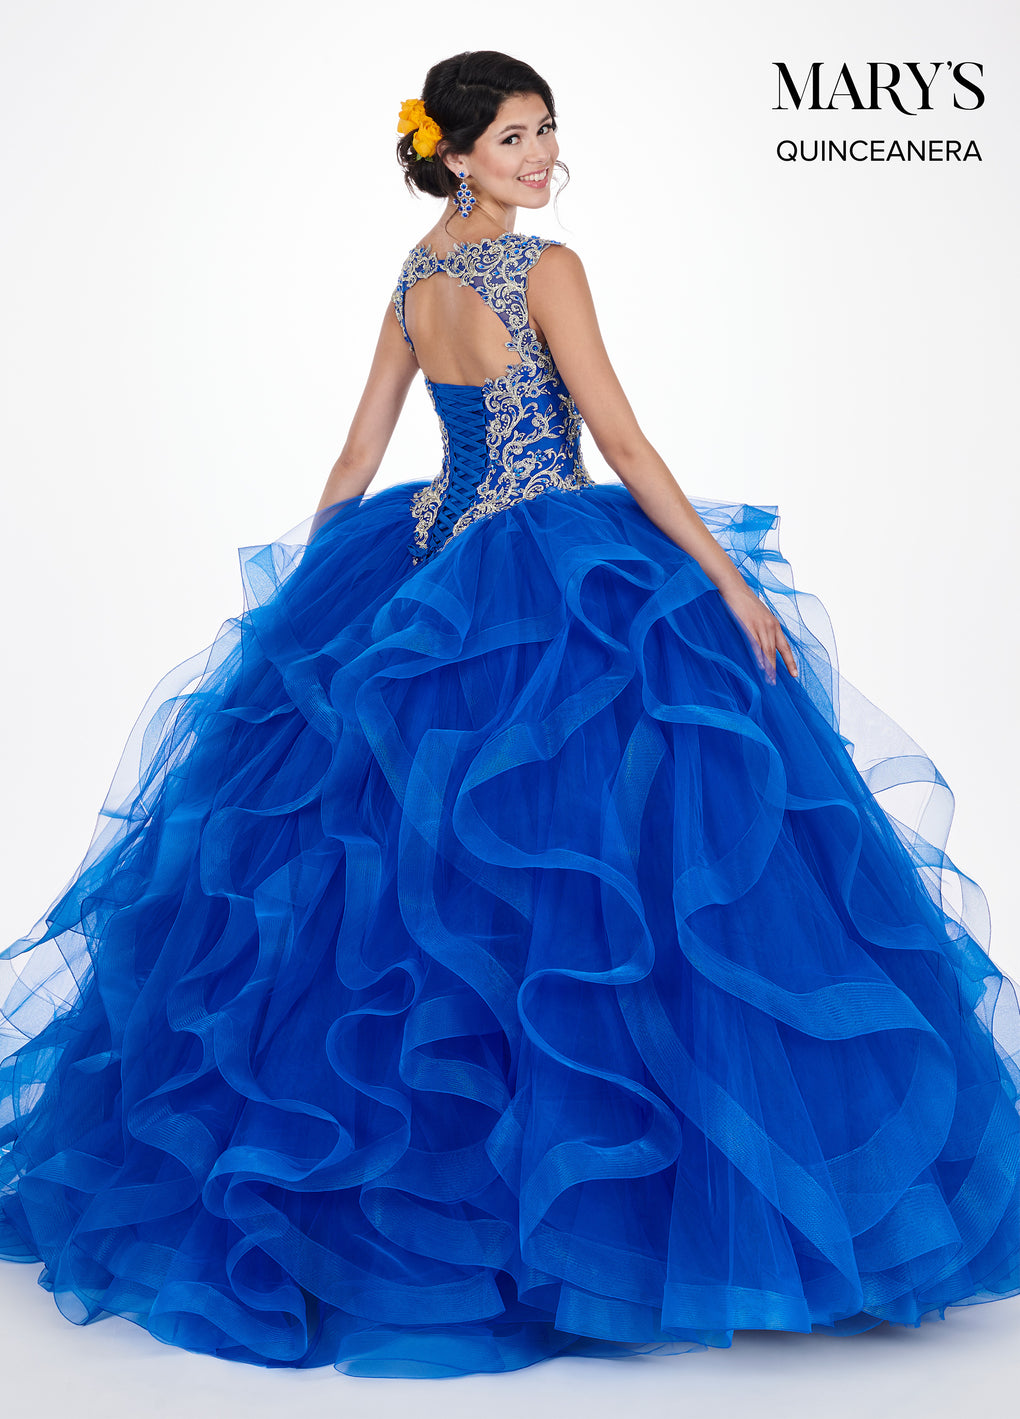 Marys Quinceanera Dresses in Royal/Gold or Dark Champagne/Gold Color